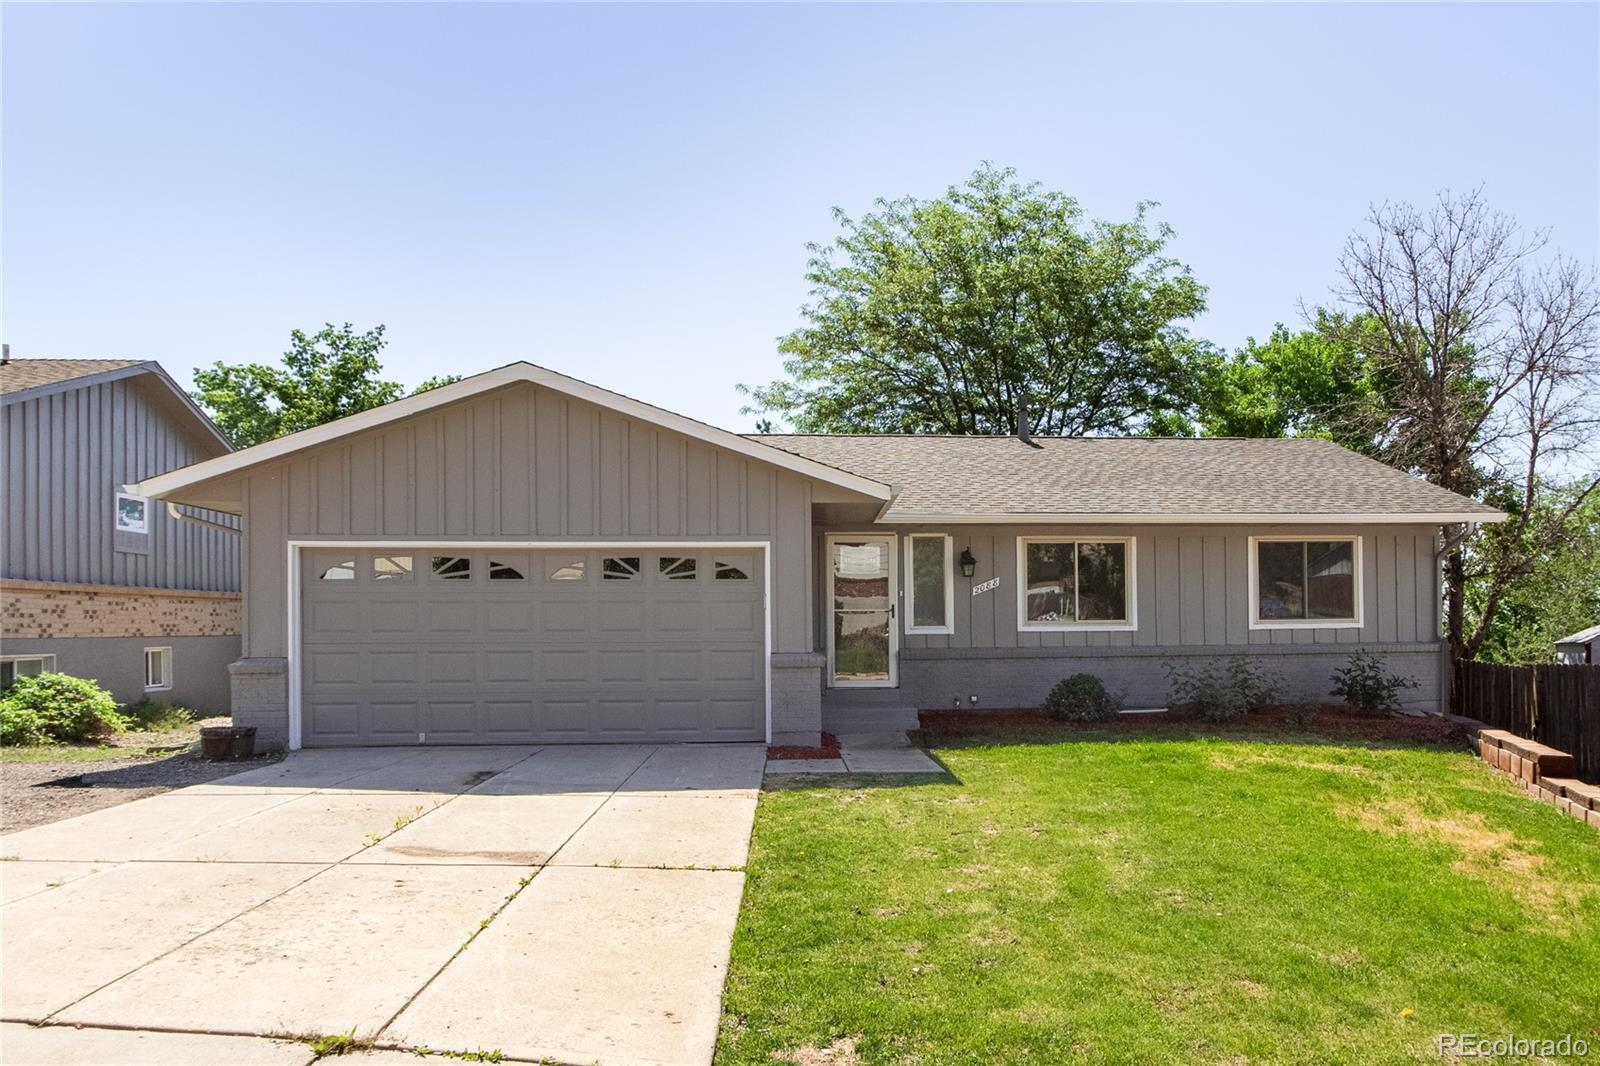 2088 S Coors Court, Lakewood, CO 80228 - #: 8649243